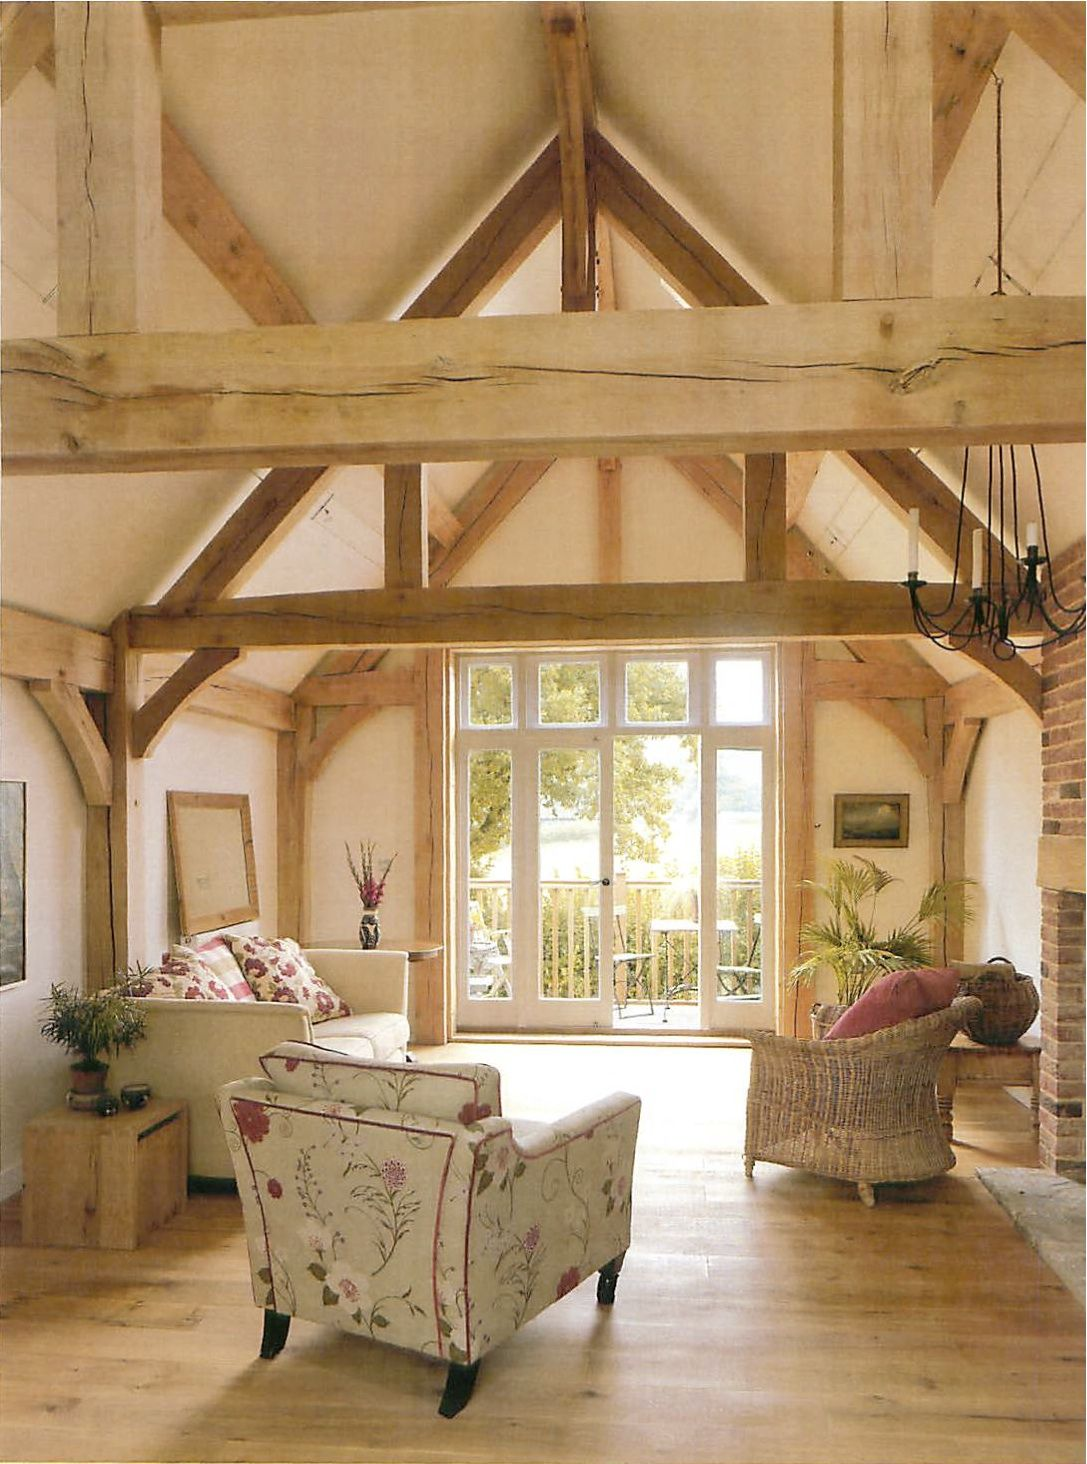 Border Oak Barn Interior - Sitting Room with vaulted ...